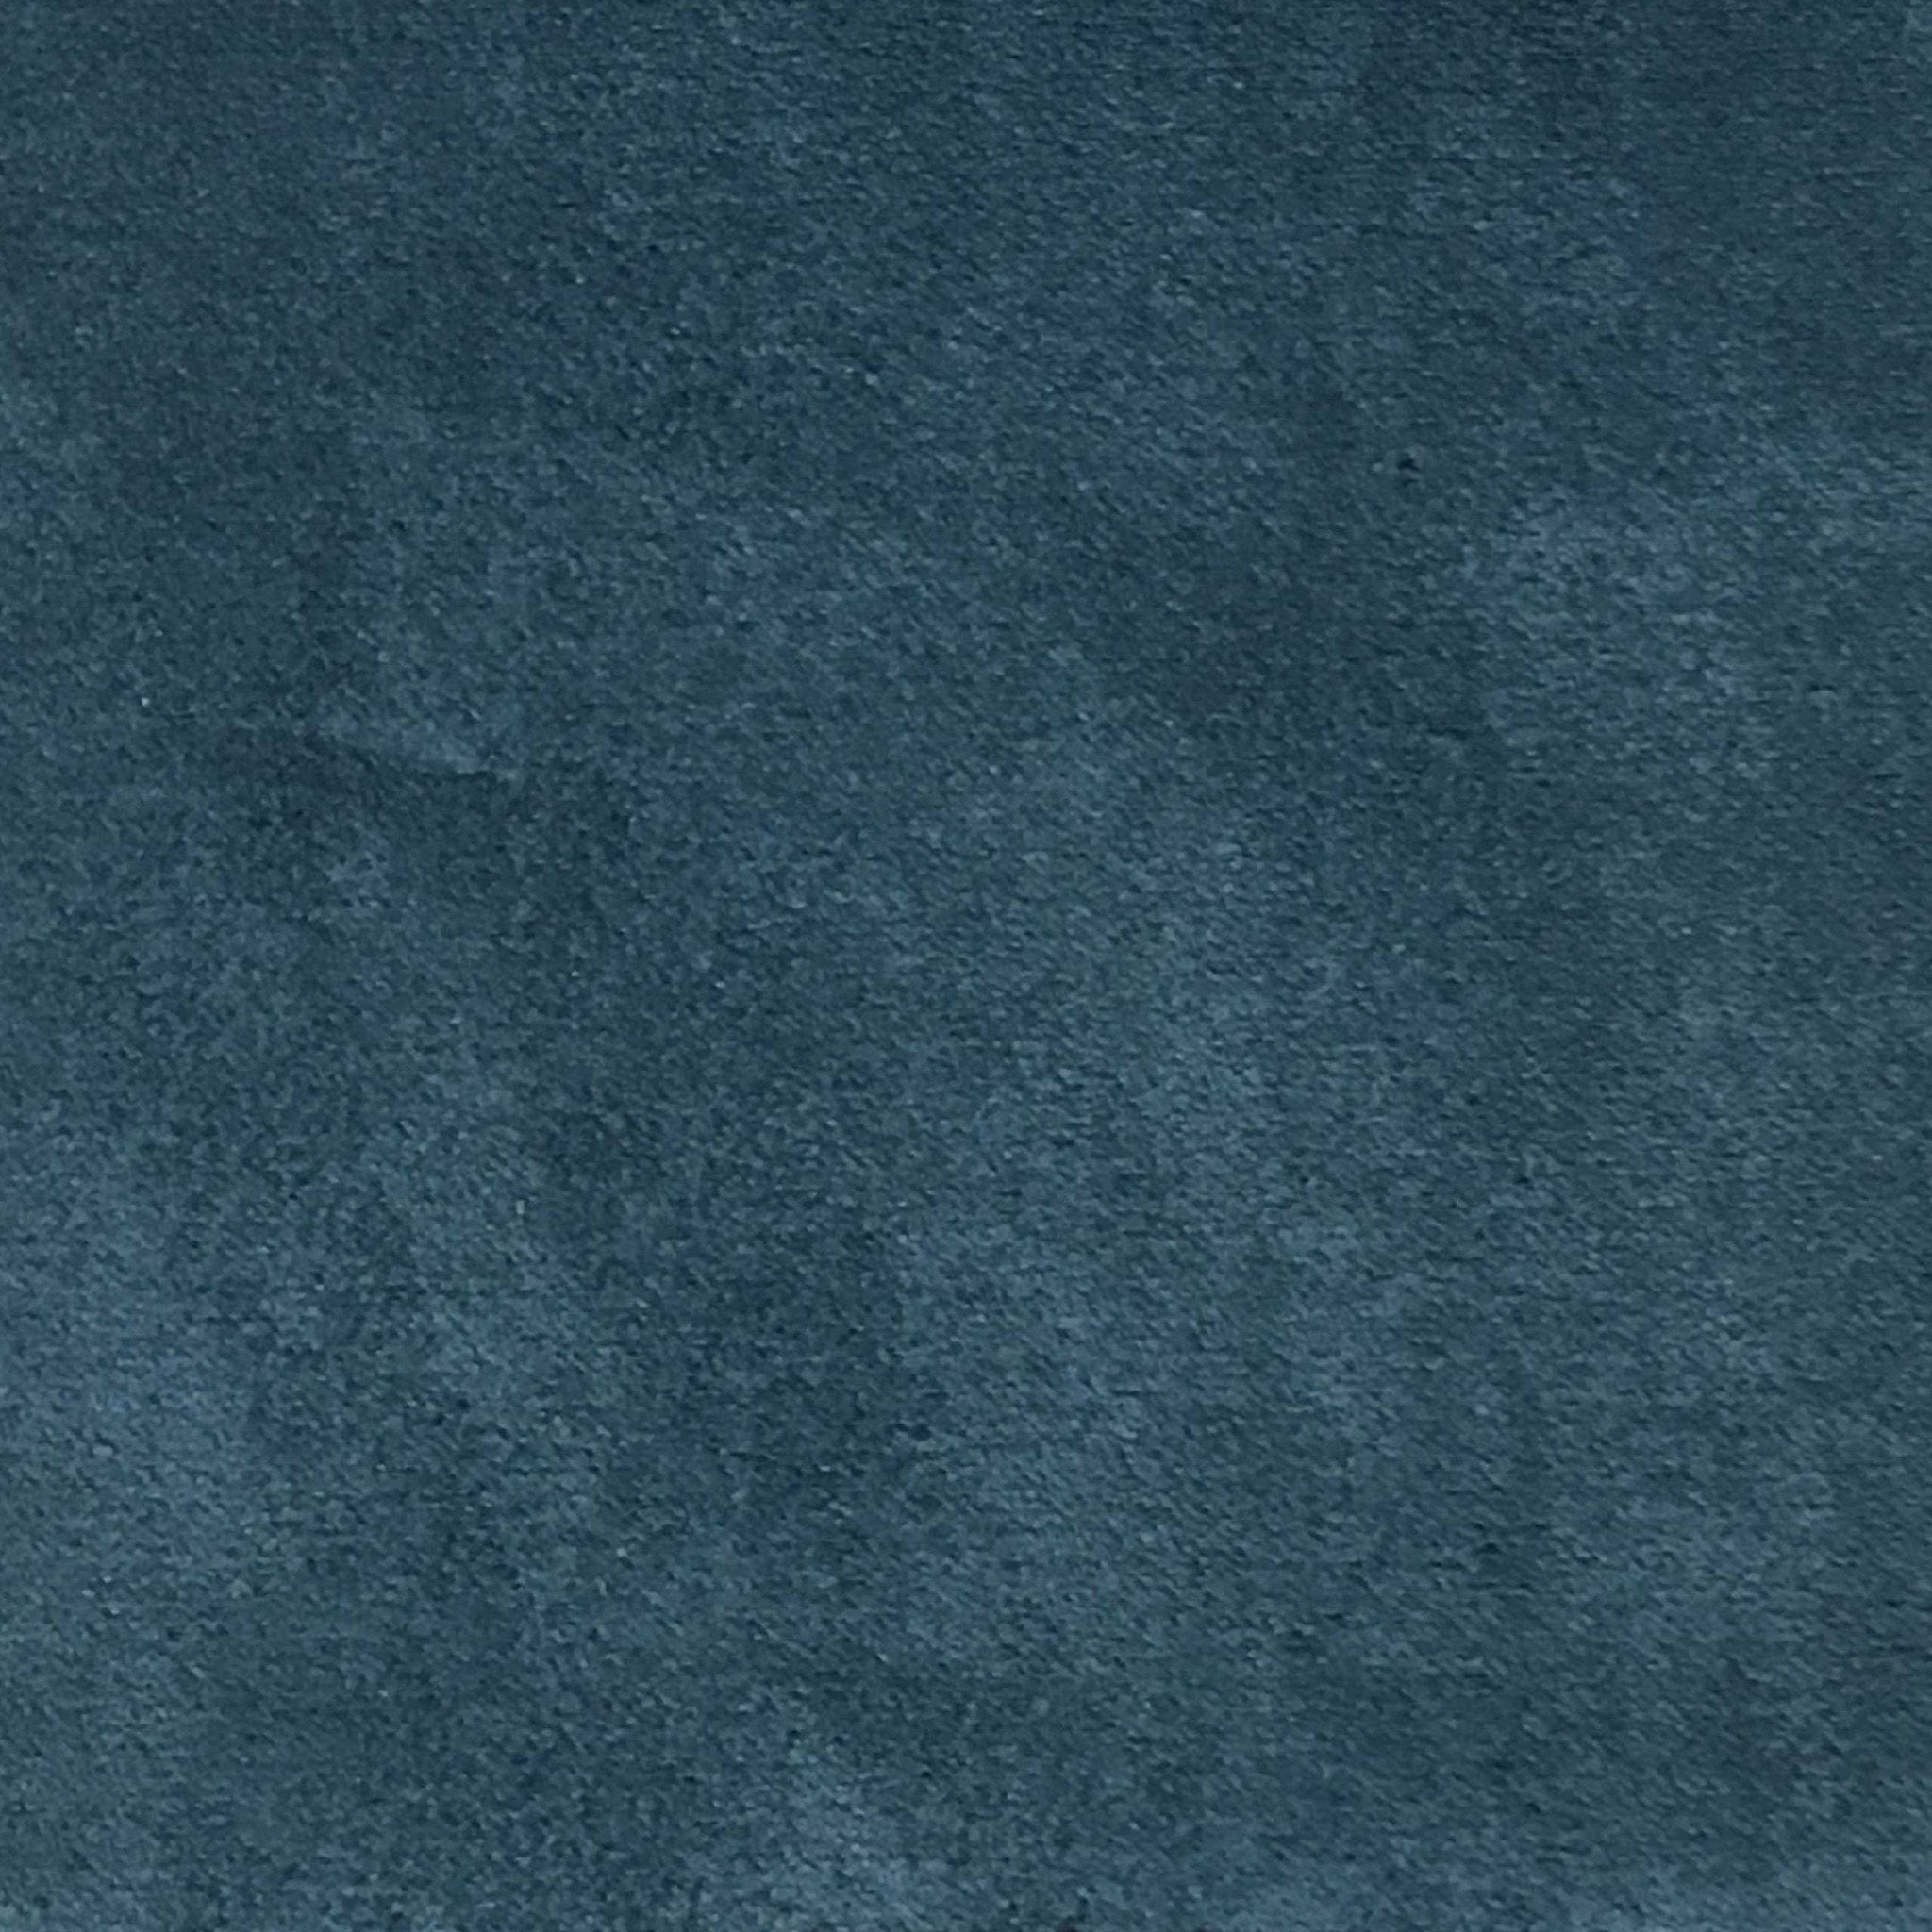 Light Suede - Microsuede Fabric by the Yard